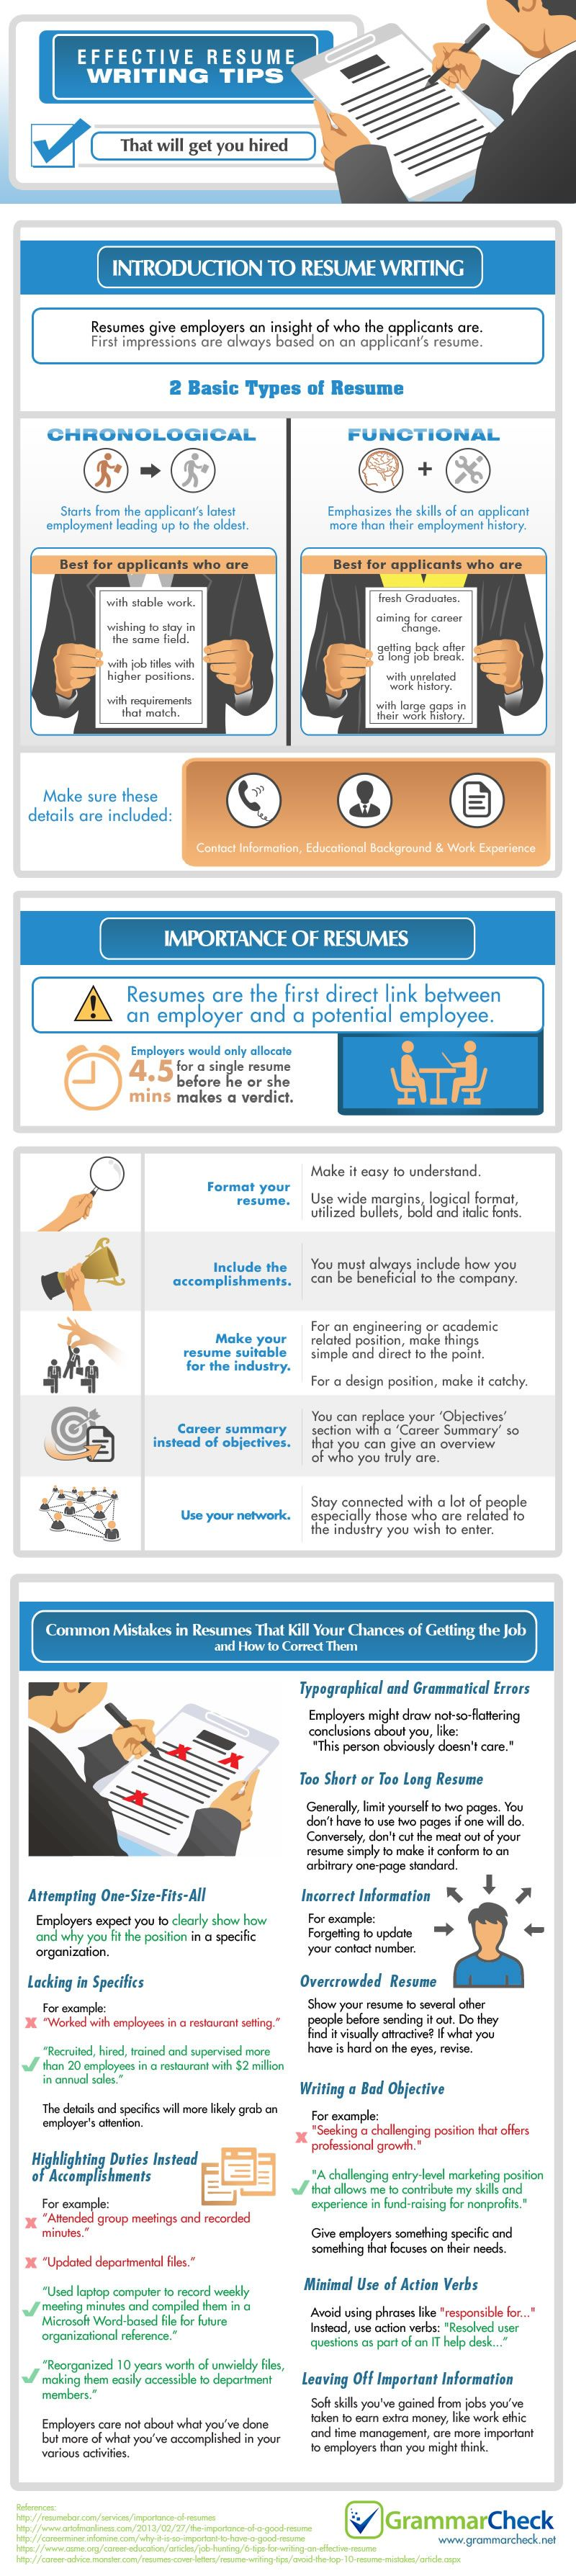 Effective Resume Writing Tips Infographic Grammar Check